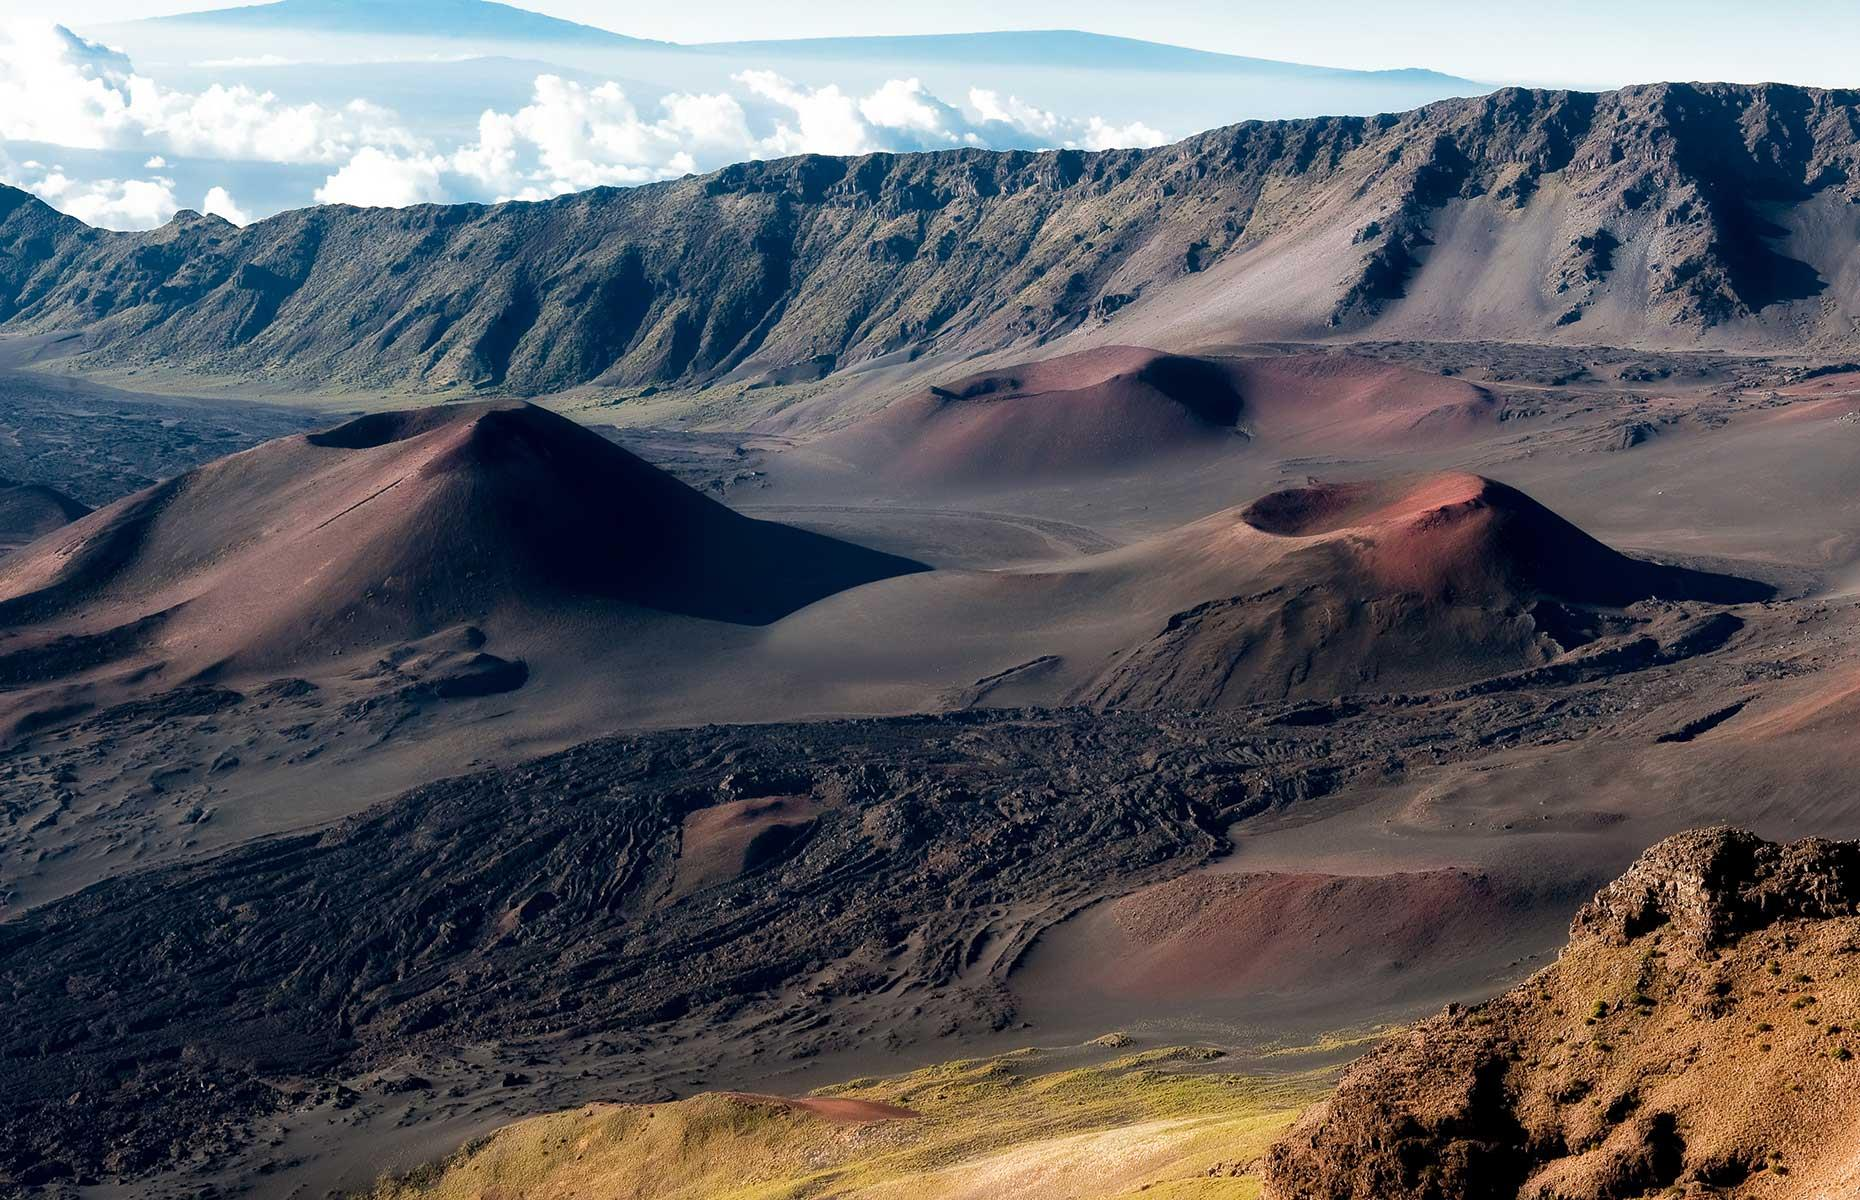 Slide 12 of 61: These Mars-like landscapes exist in the remote Summit District of Hawaii's Haleakalā National Park. Here, the namesake Haleakalā, a gargantuan shield volcano, reaches 10,023 feet (254.5m), and brave hikers come to spot native flora and fauna and experience some of the best stargazing in the state. Elsewhere in the park, the Kīpahulu District complements the Summit with its waterfalls, greenery and rugged coastline.